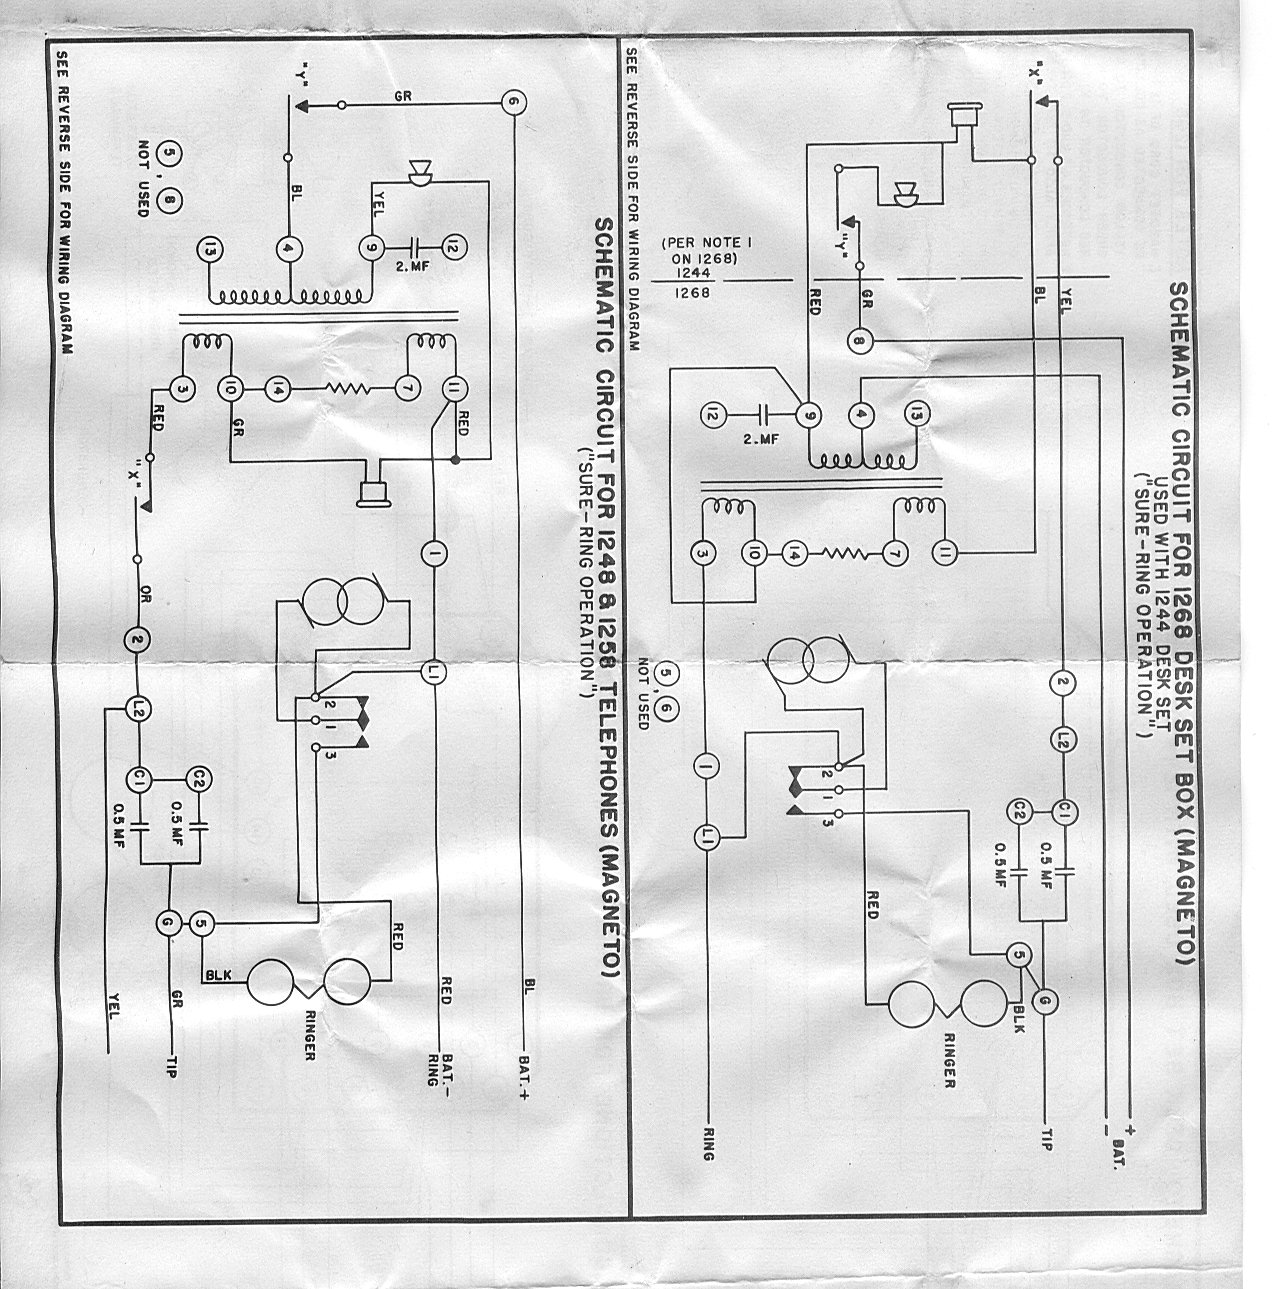 Telephone Technical References Phone Schematic Wiring Diagram Magneto Desk Set Stromberg Carlson 1268 Box Used With 1244